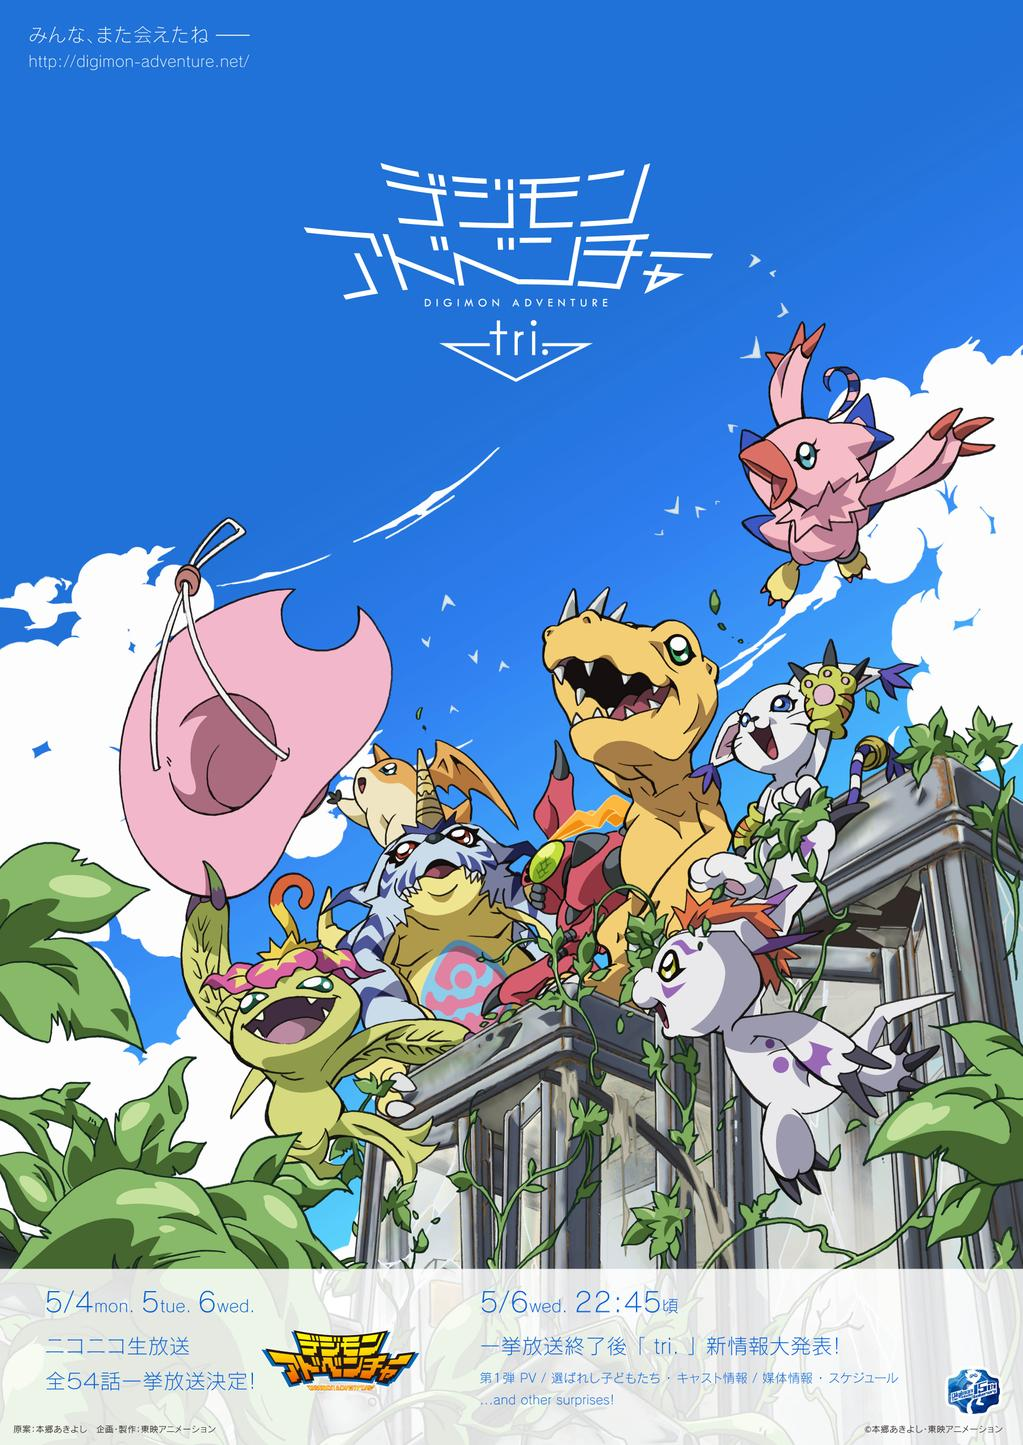 Digimon Adventure Tri. PV to Debut on May 6